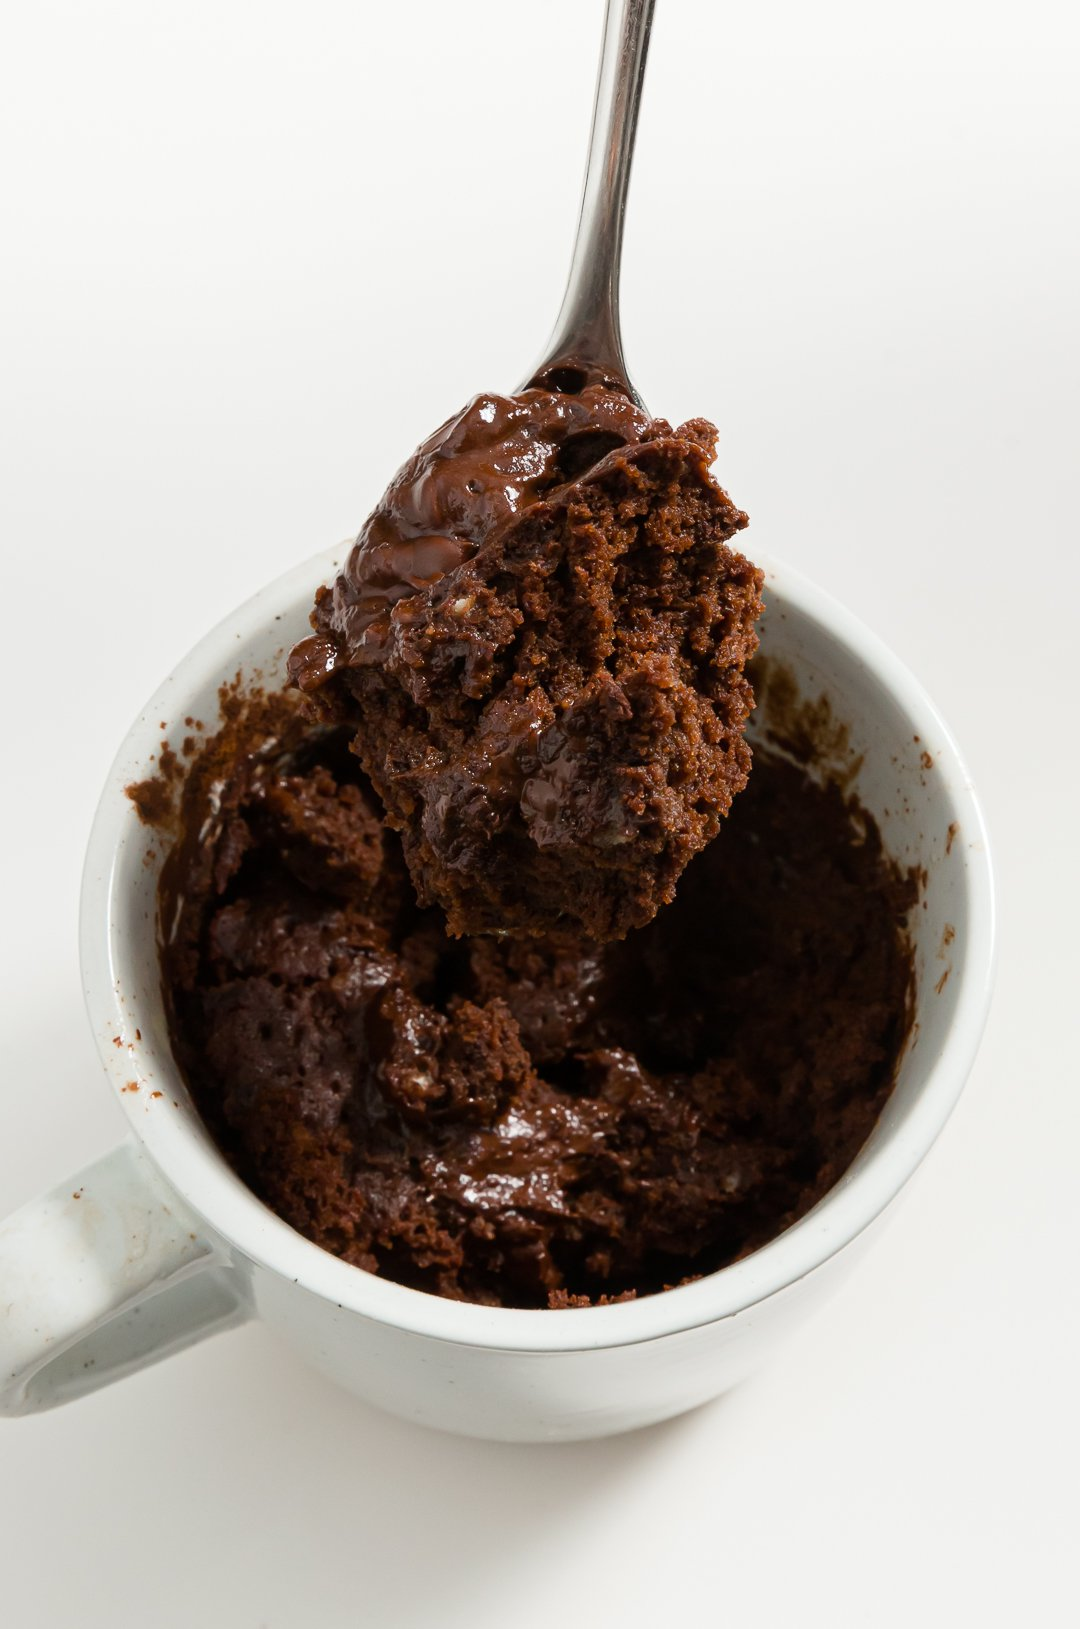 Mug cake with a spoon